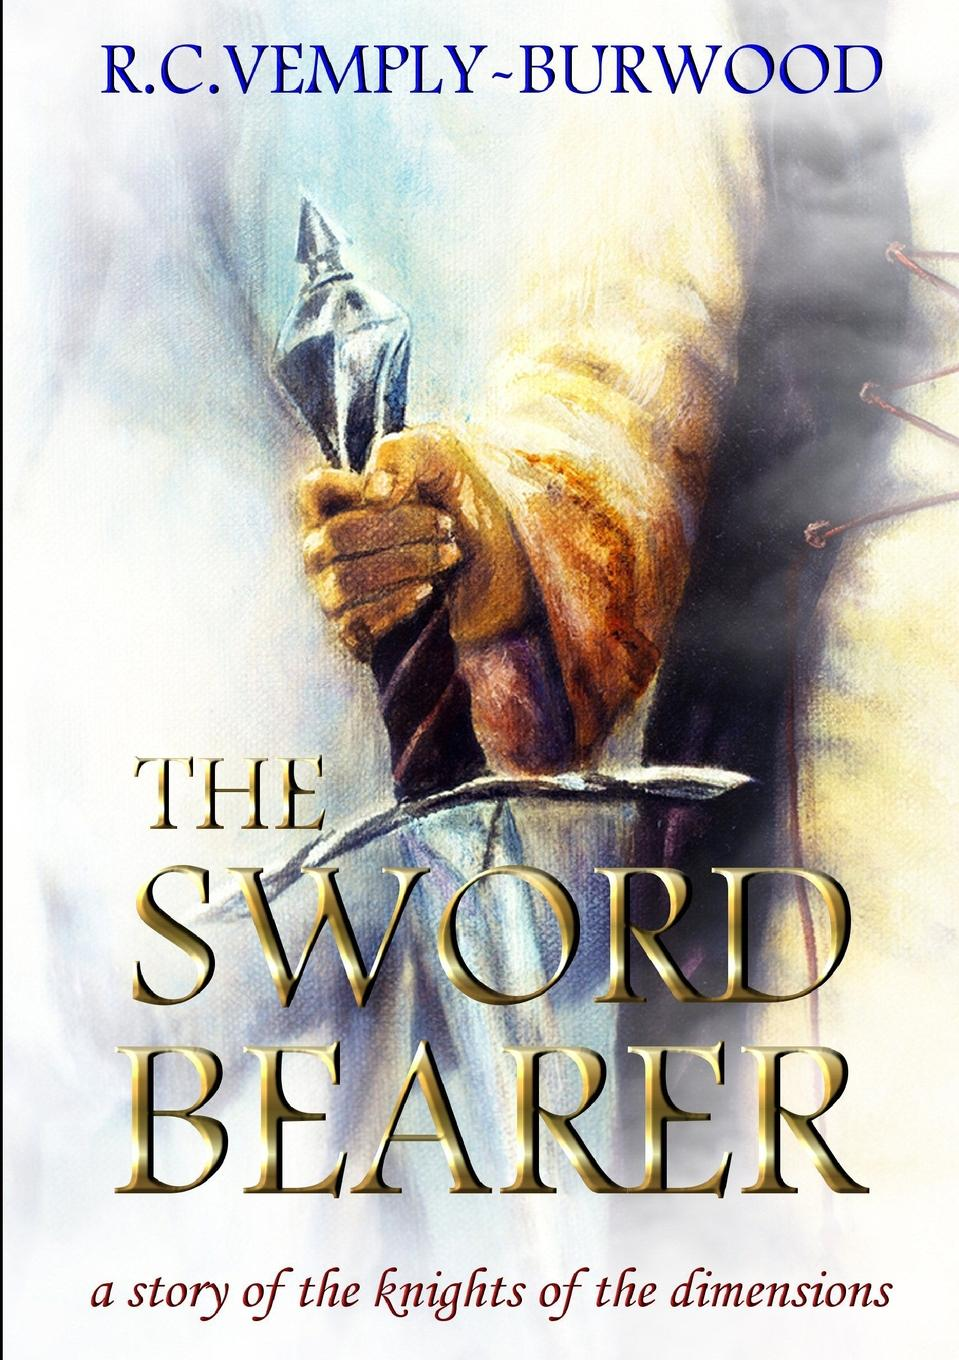 R.C. Vemply-Burwood The Sword Bearer